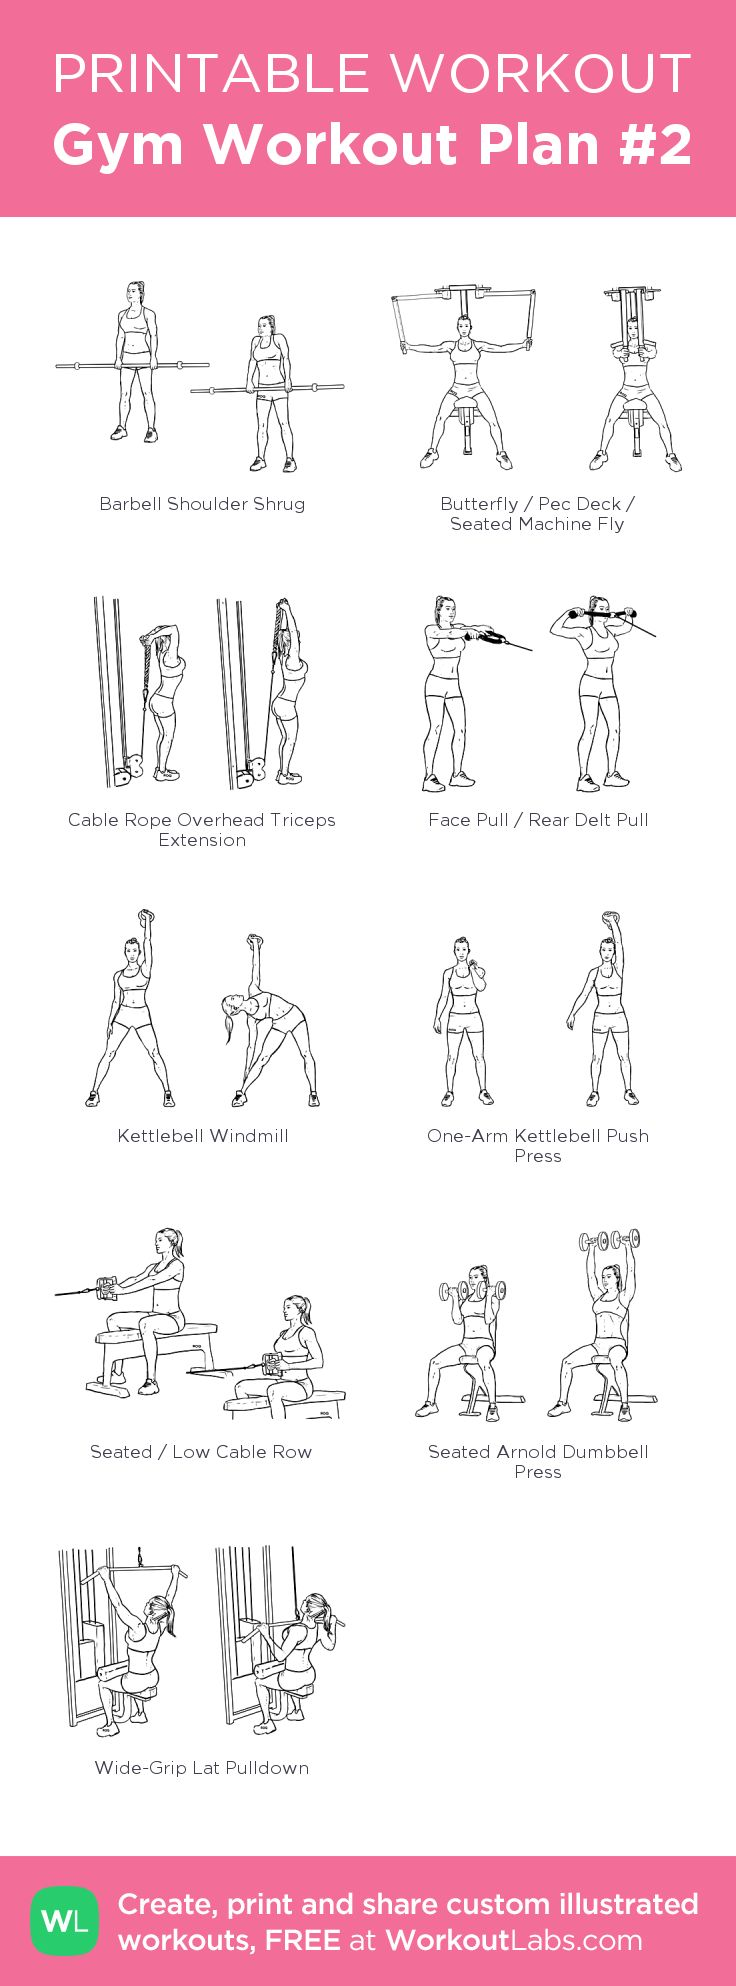 Gym Workout Plan #2:my visual workout created at WorkoutLabs.com • Click through to customize and download as a FREE PDF! #customworkout